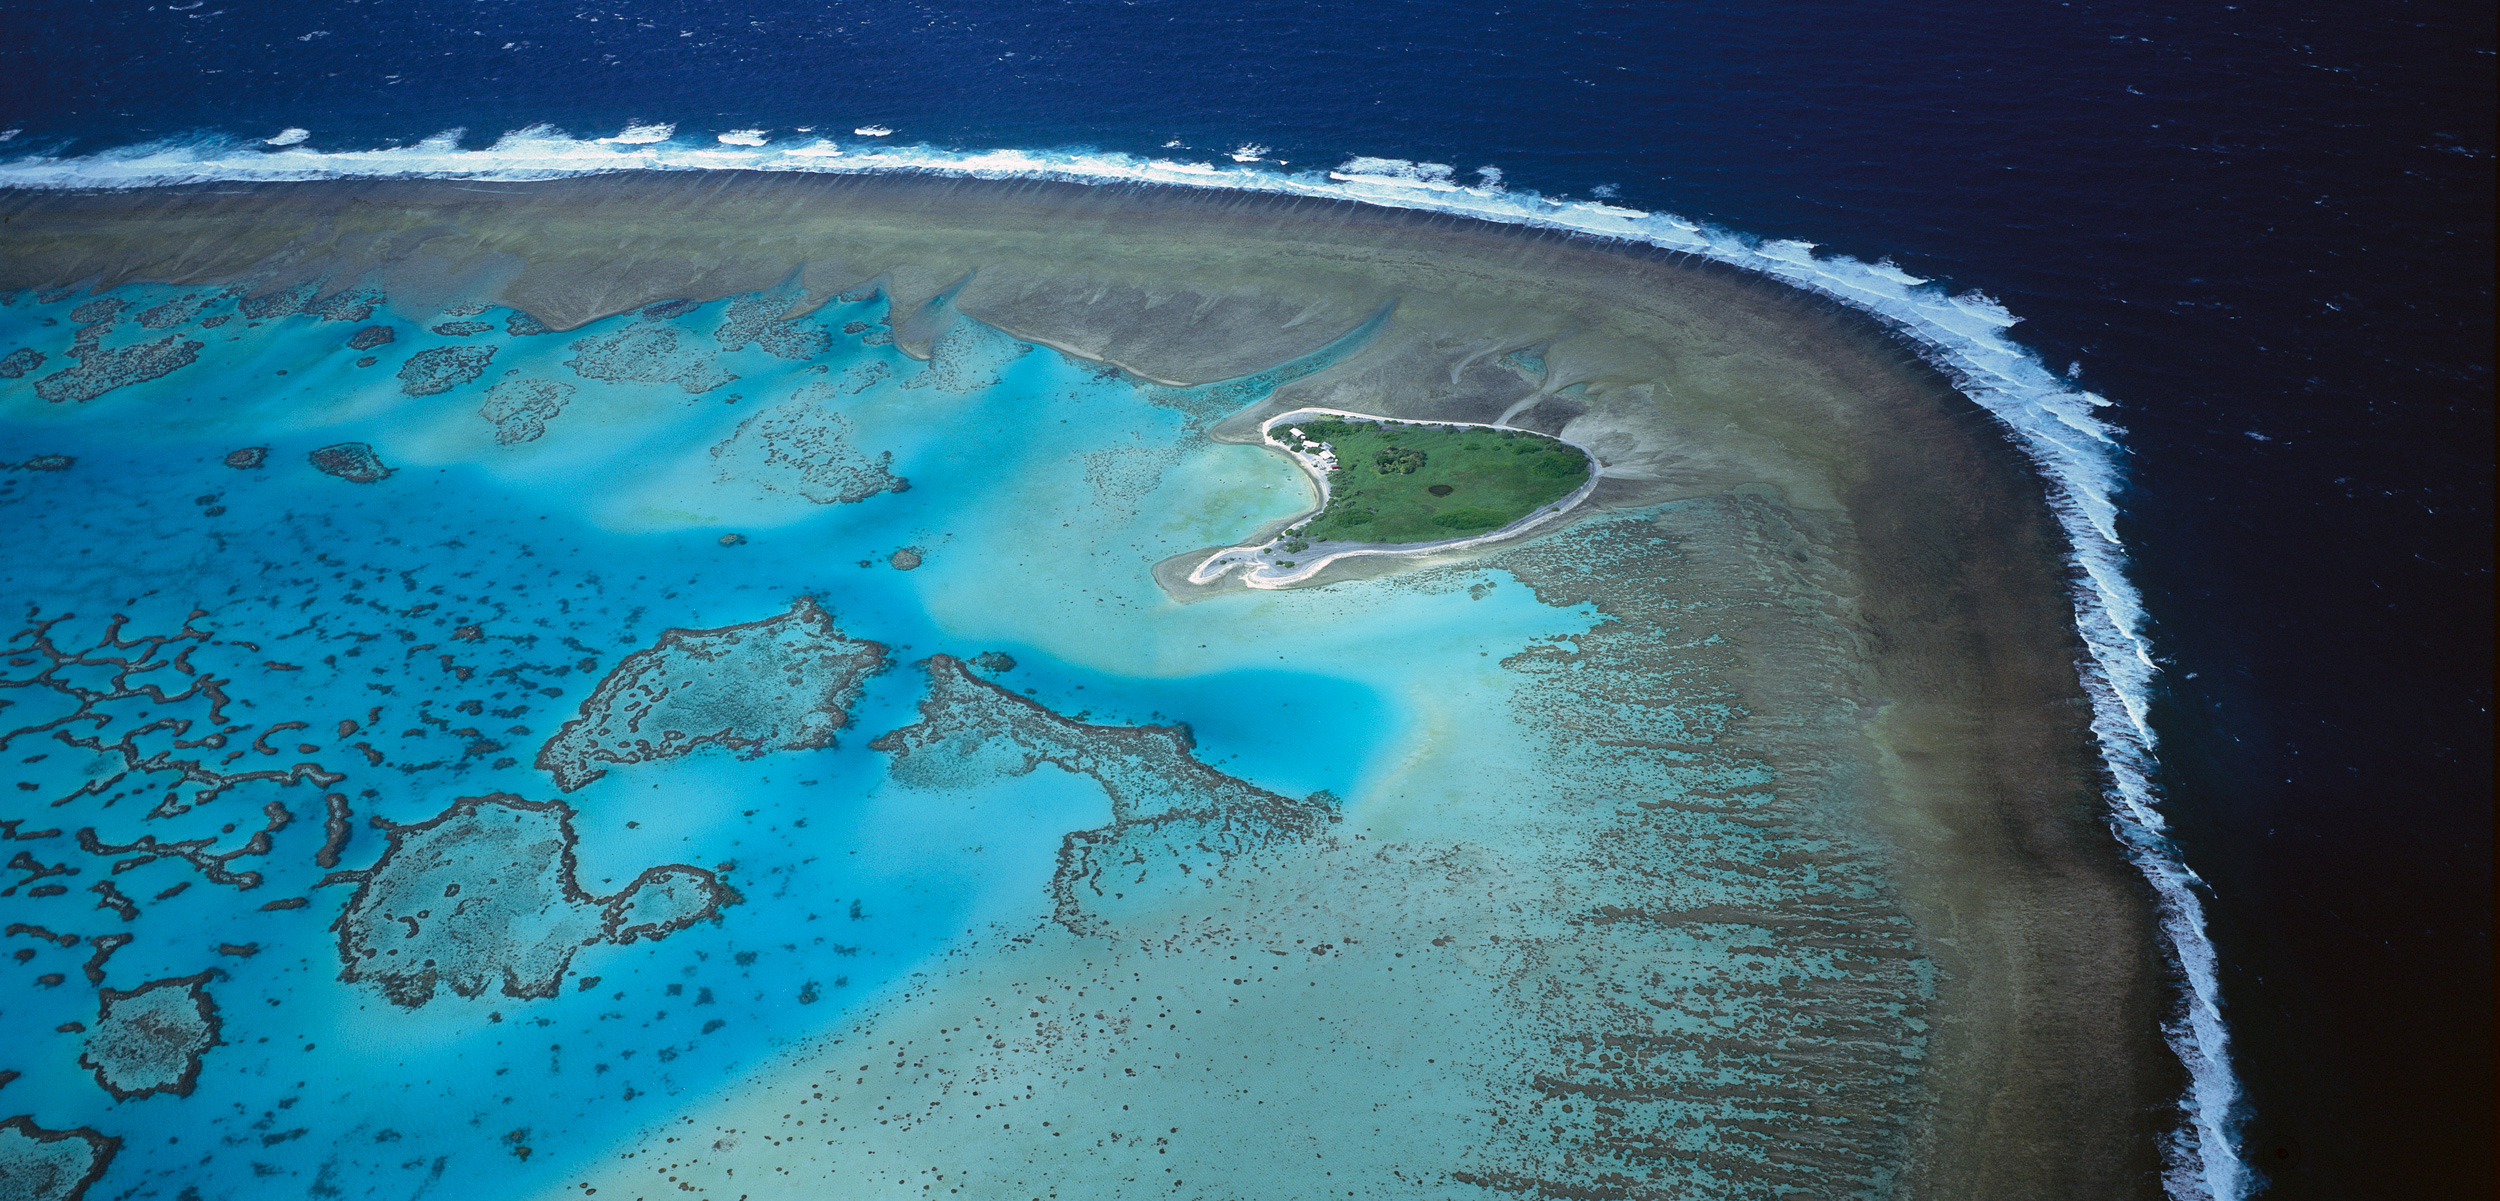 One Tree Island and reef, Capricorn-Bunker group, Great Barrier Reef Marine Park, Queensland, Australia